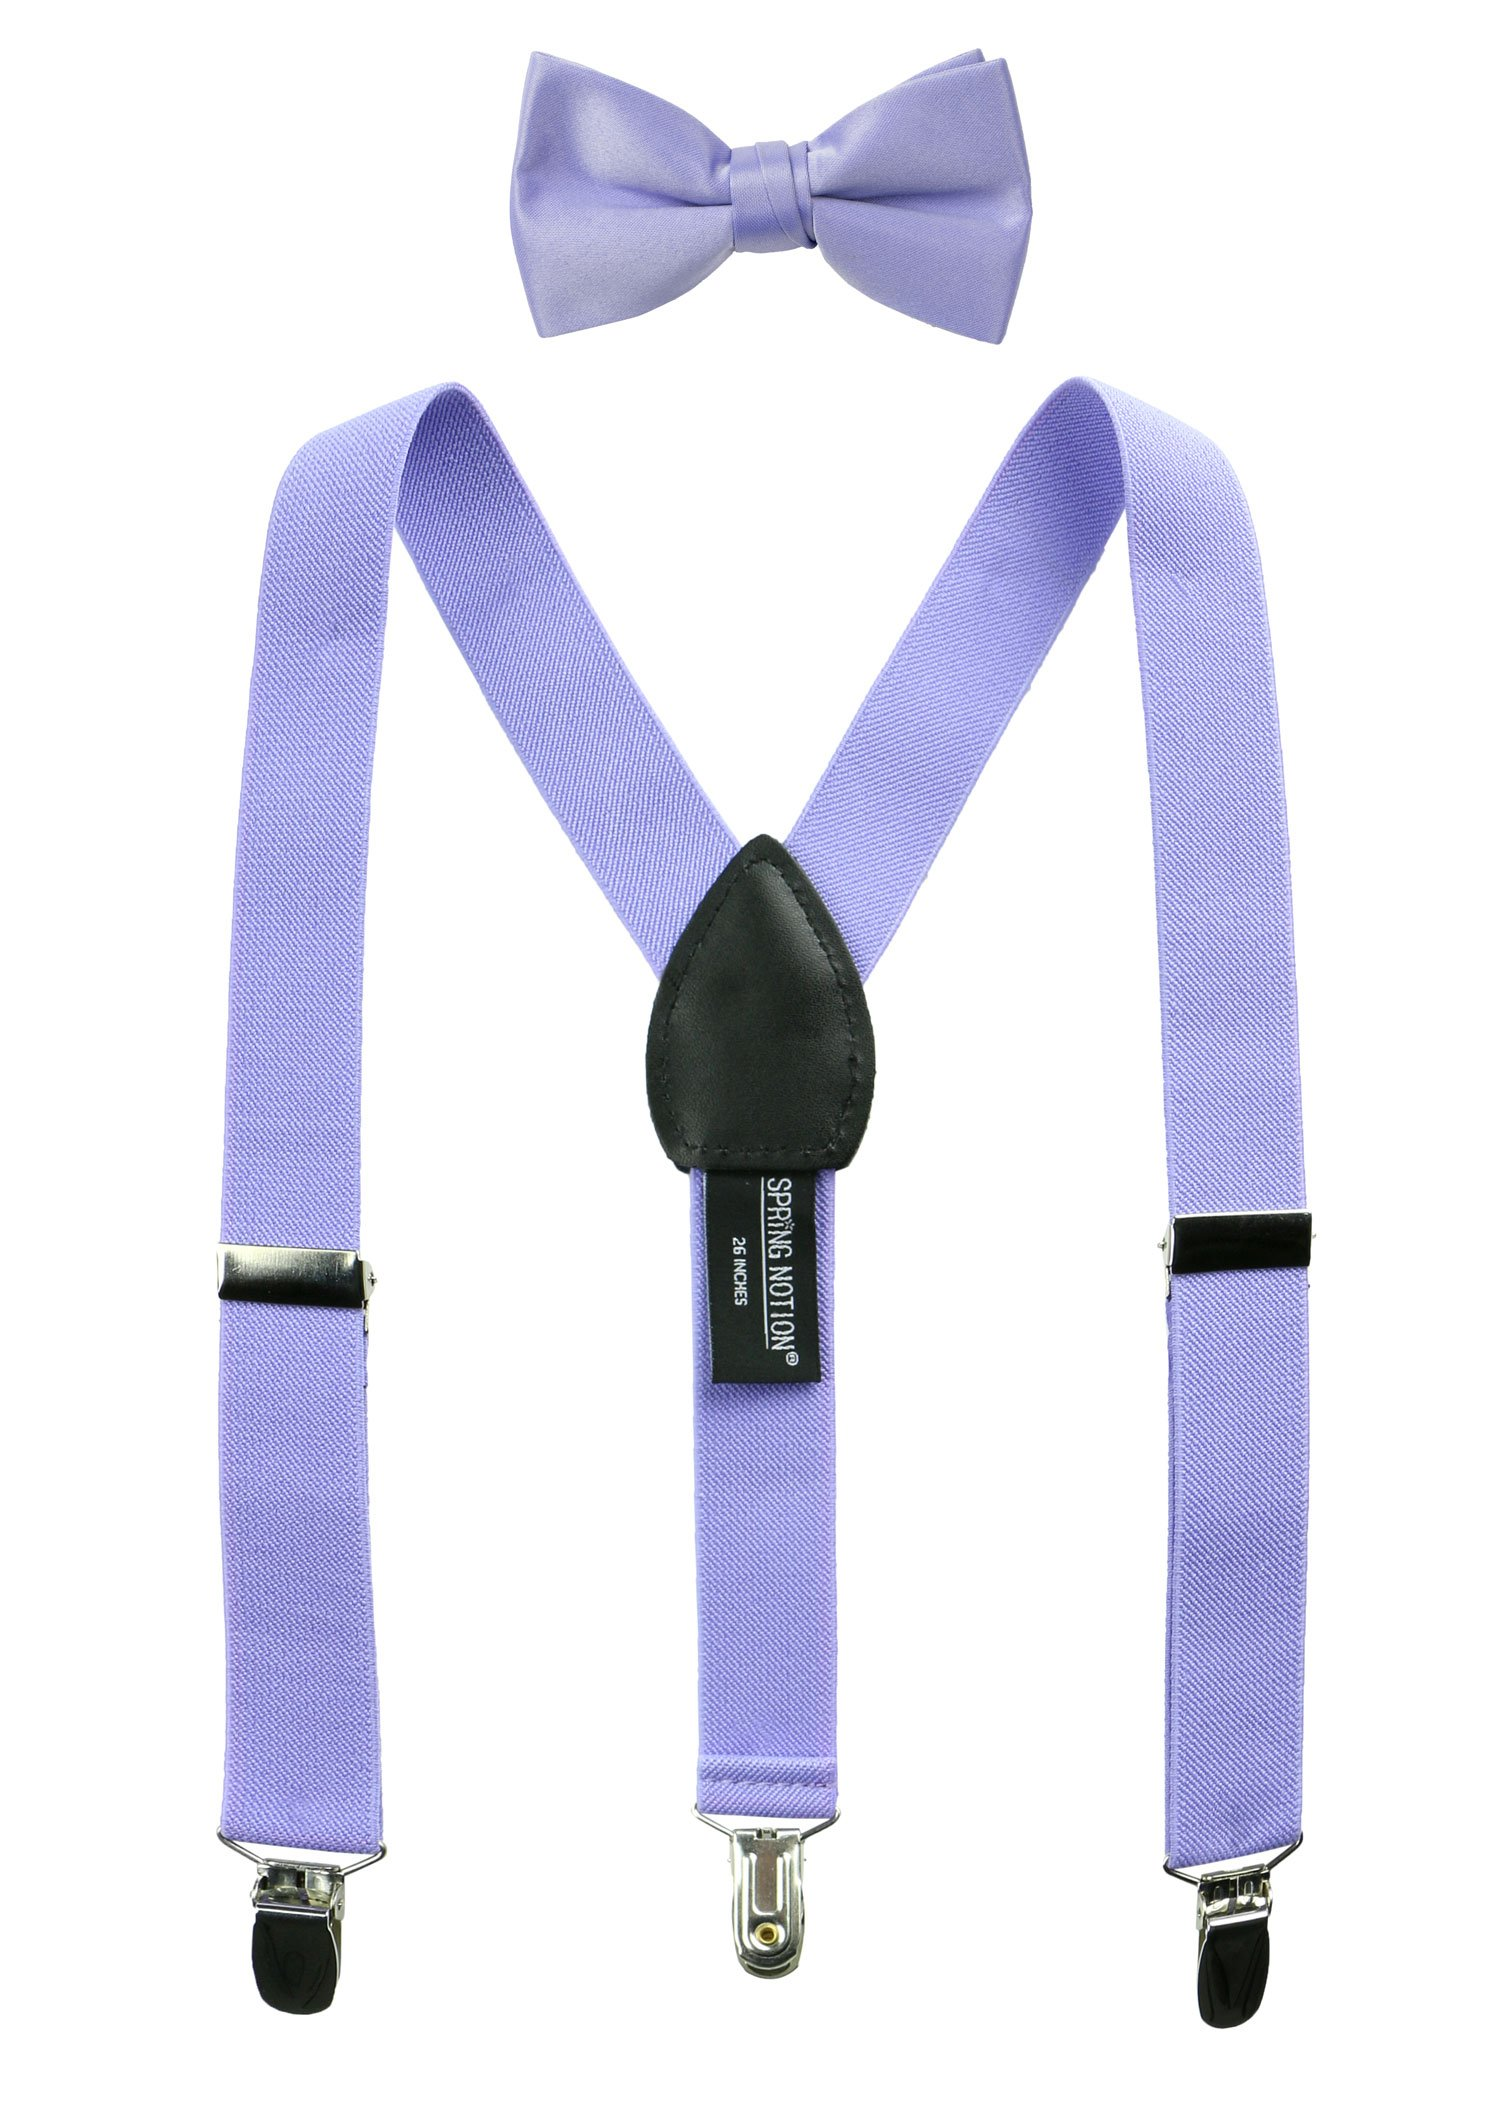 Spring Notion Boys' Suspenders and Solid Color Bowtie Set Dusty Lavender Small